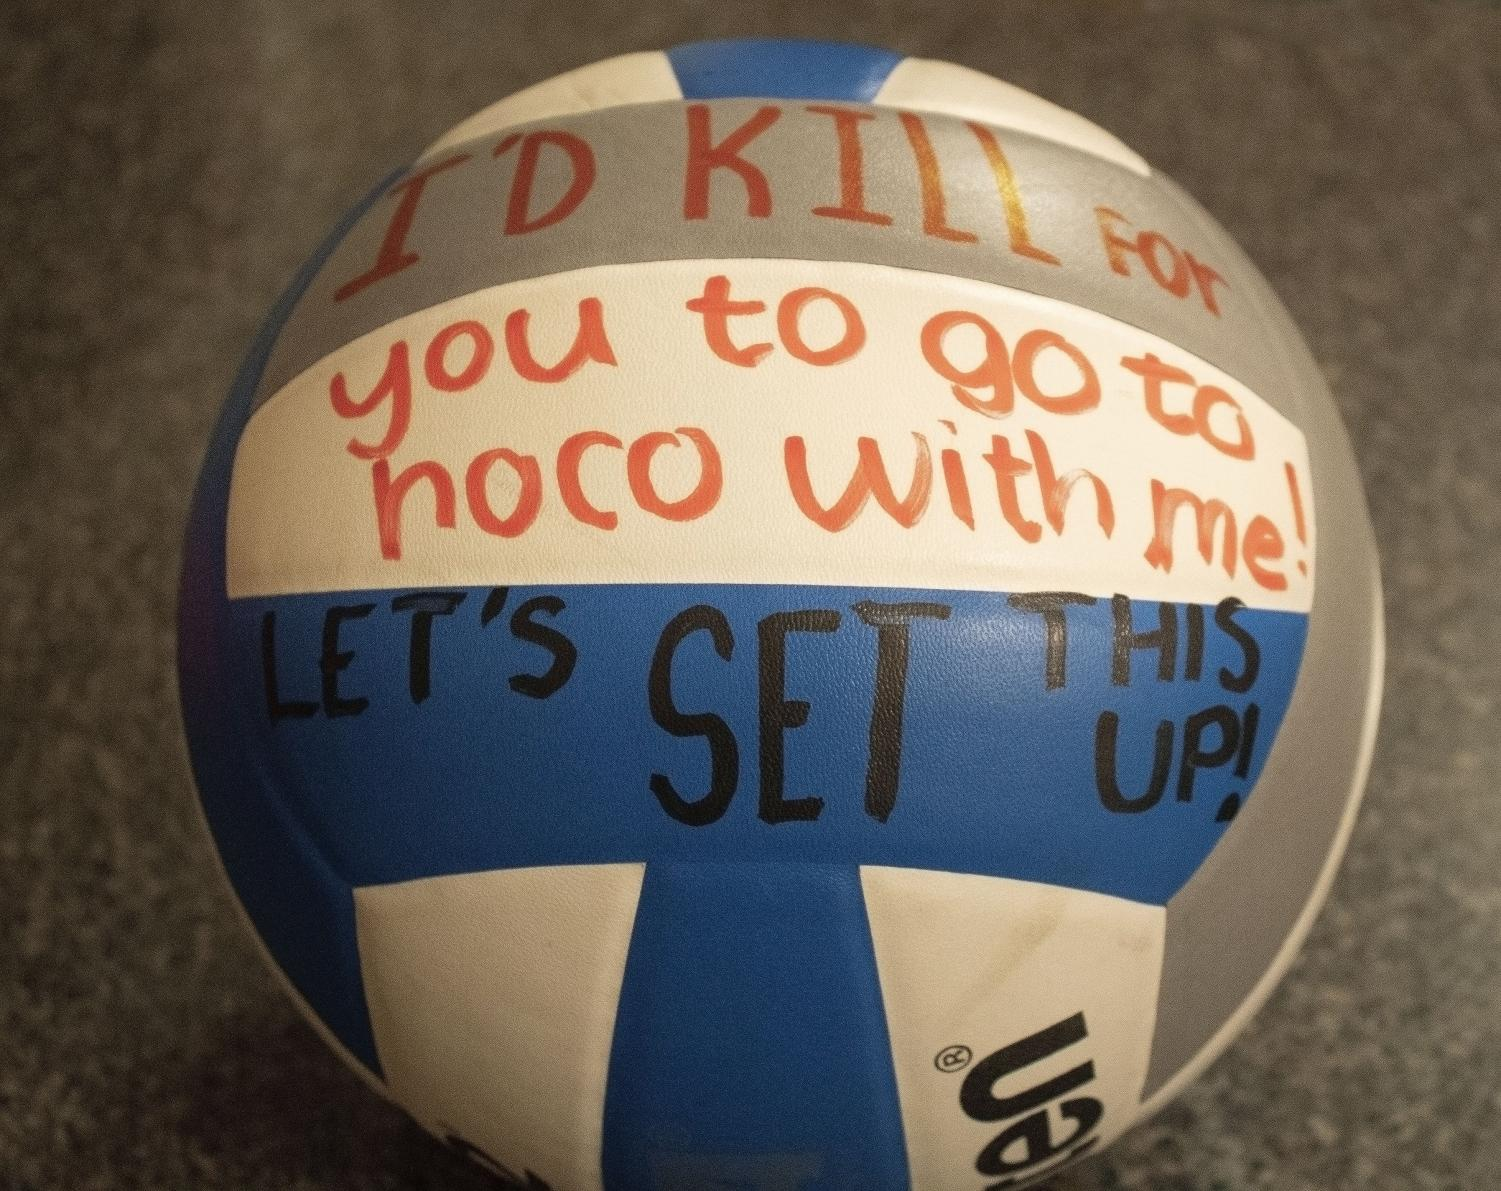 Many students use proposals such as volleyballs to ask their peers to homecoming.